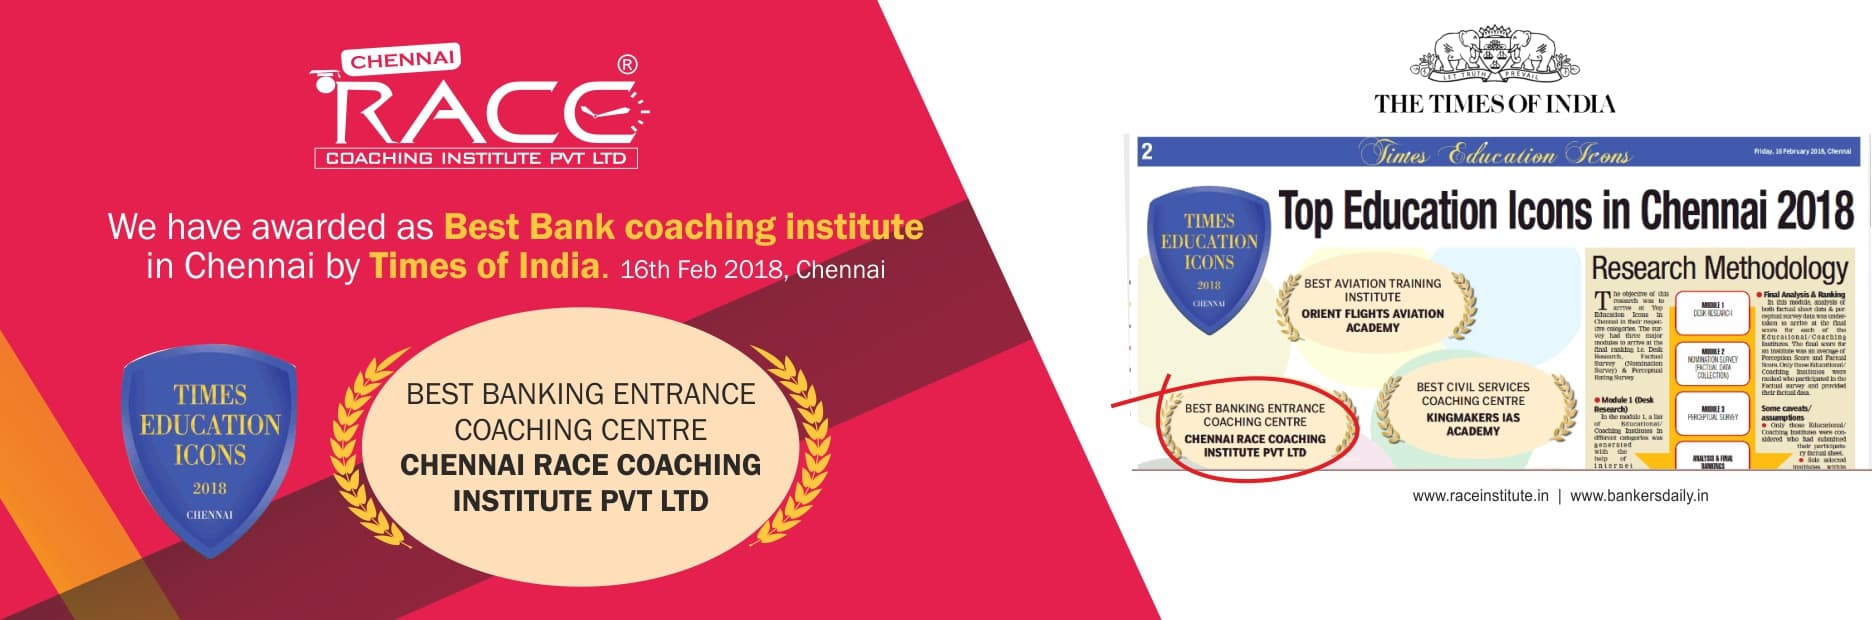 chennai race bank coaching institute awards